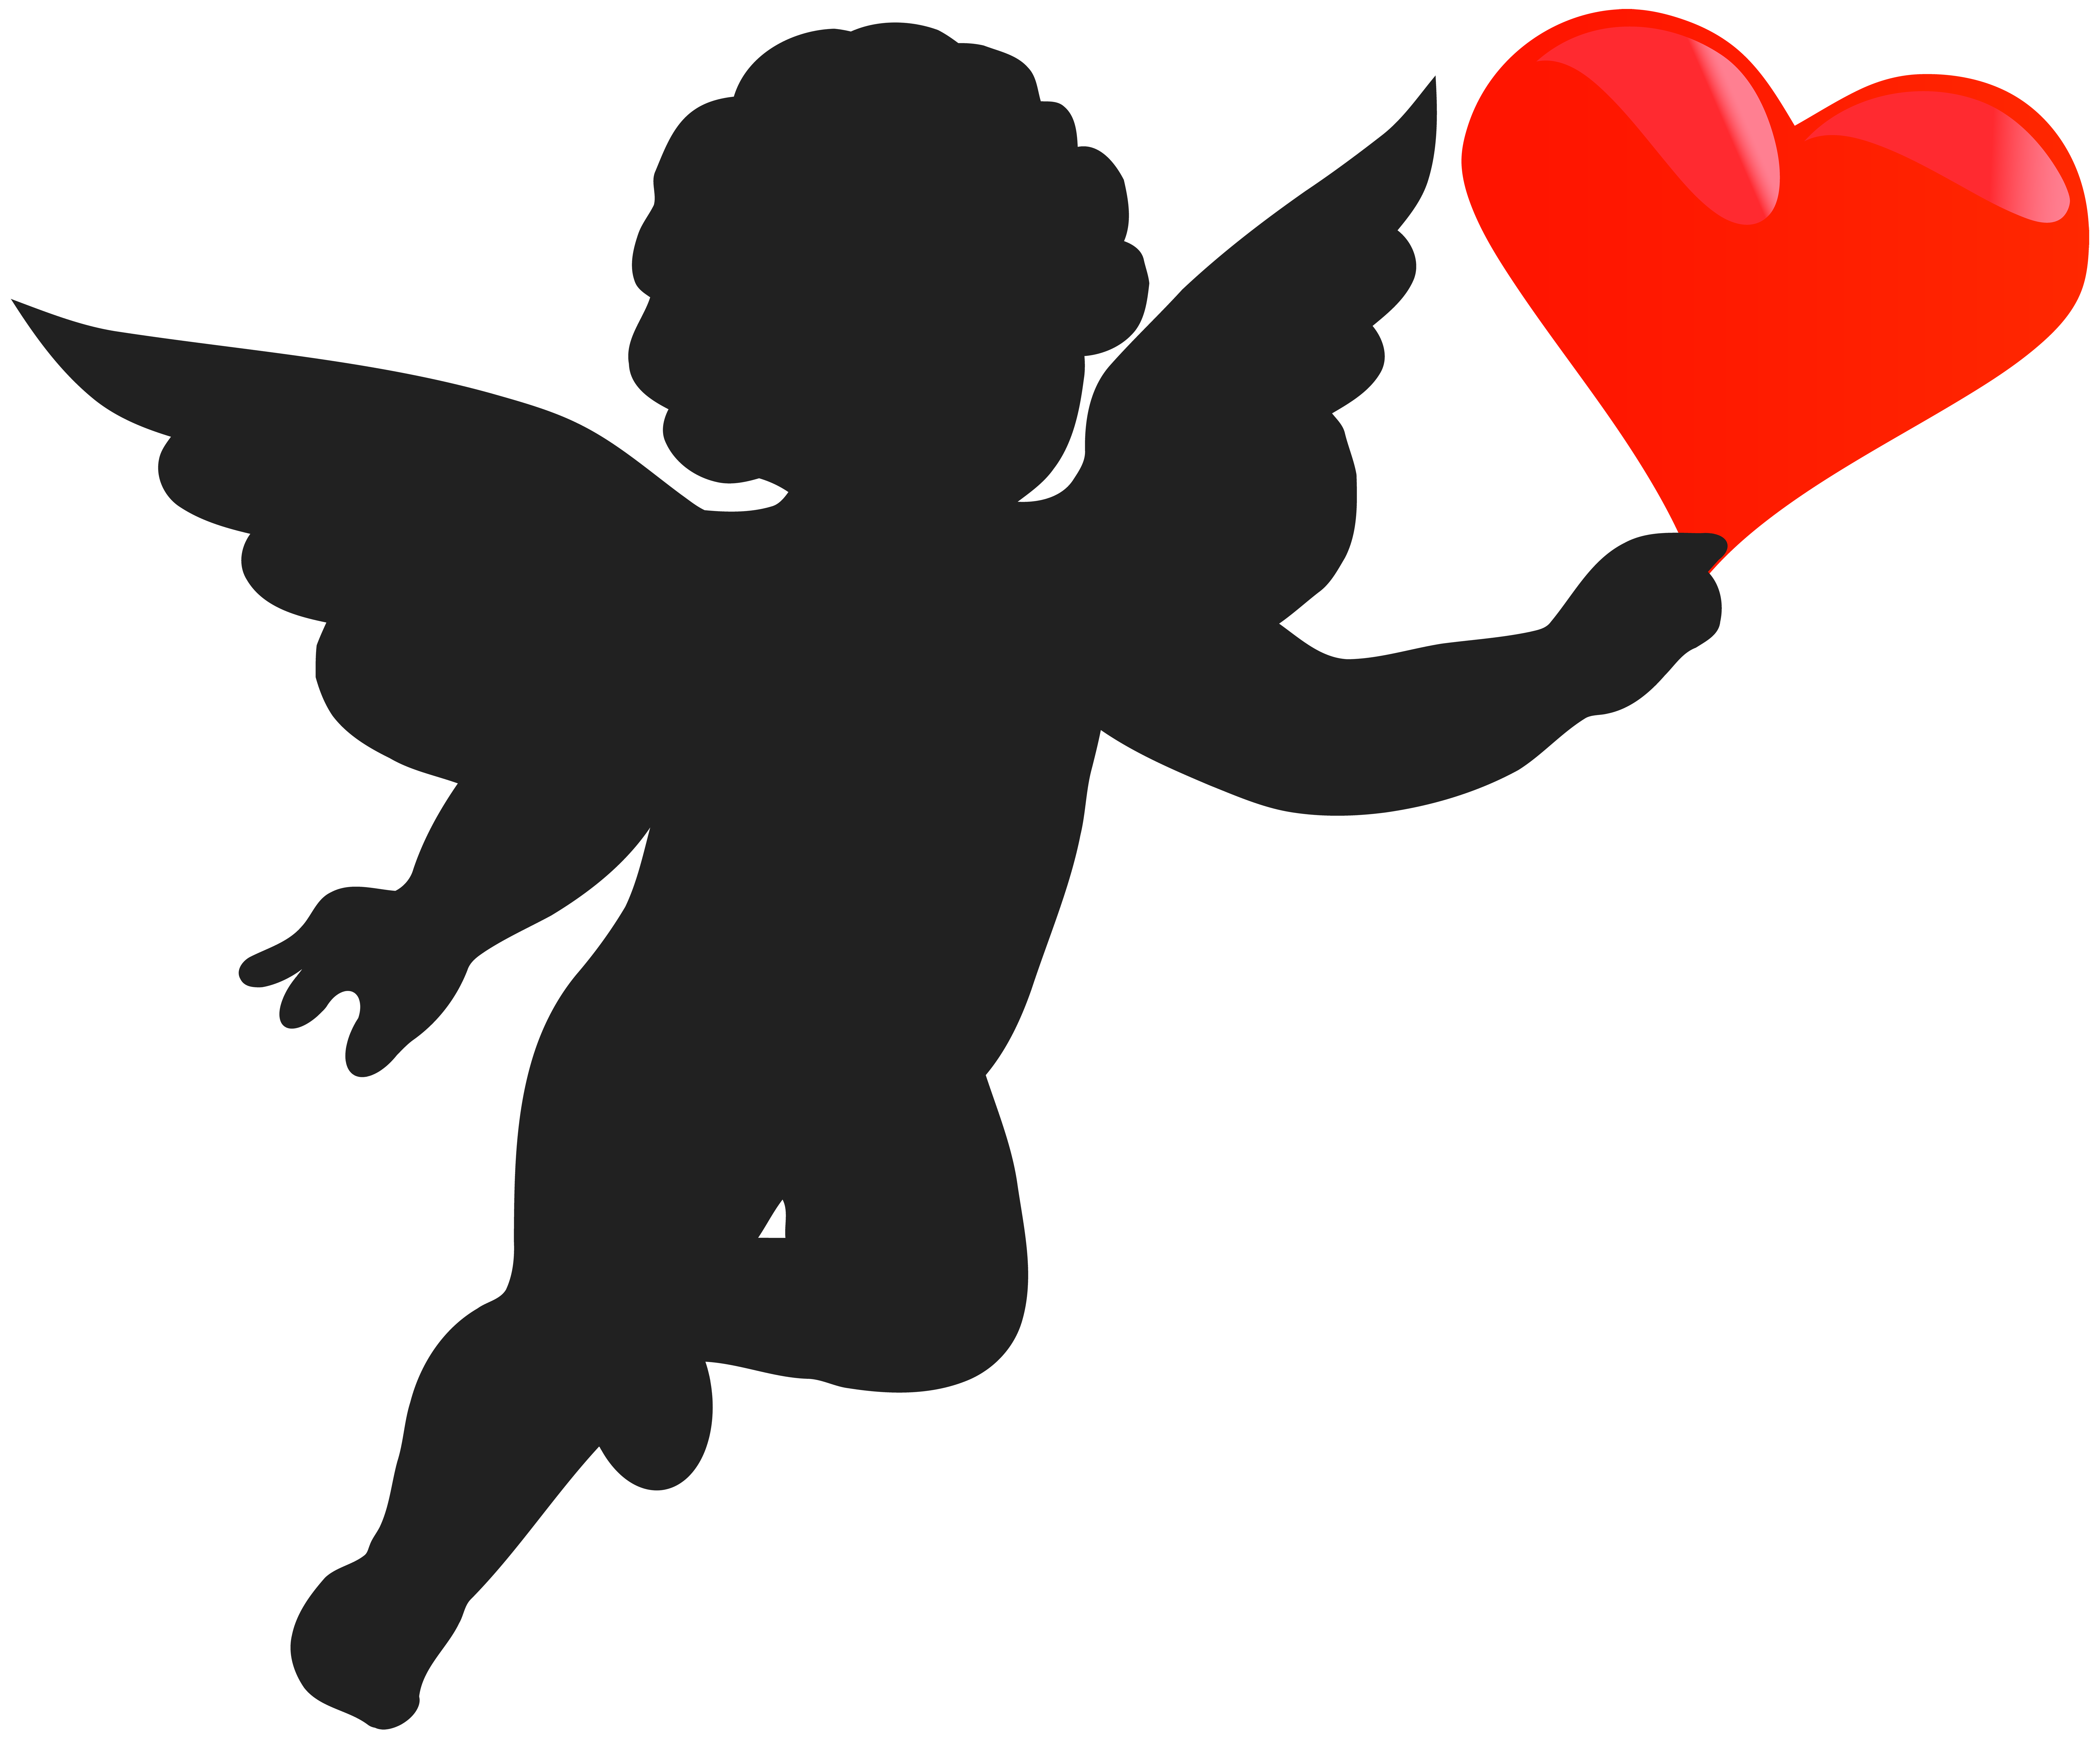 Cupid with heart png. Heartbeat clipart silhouette